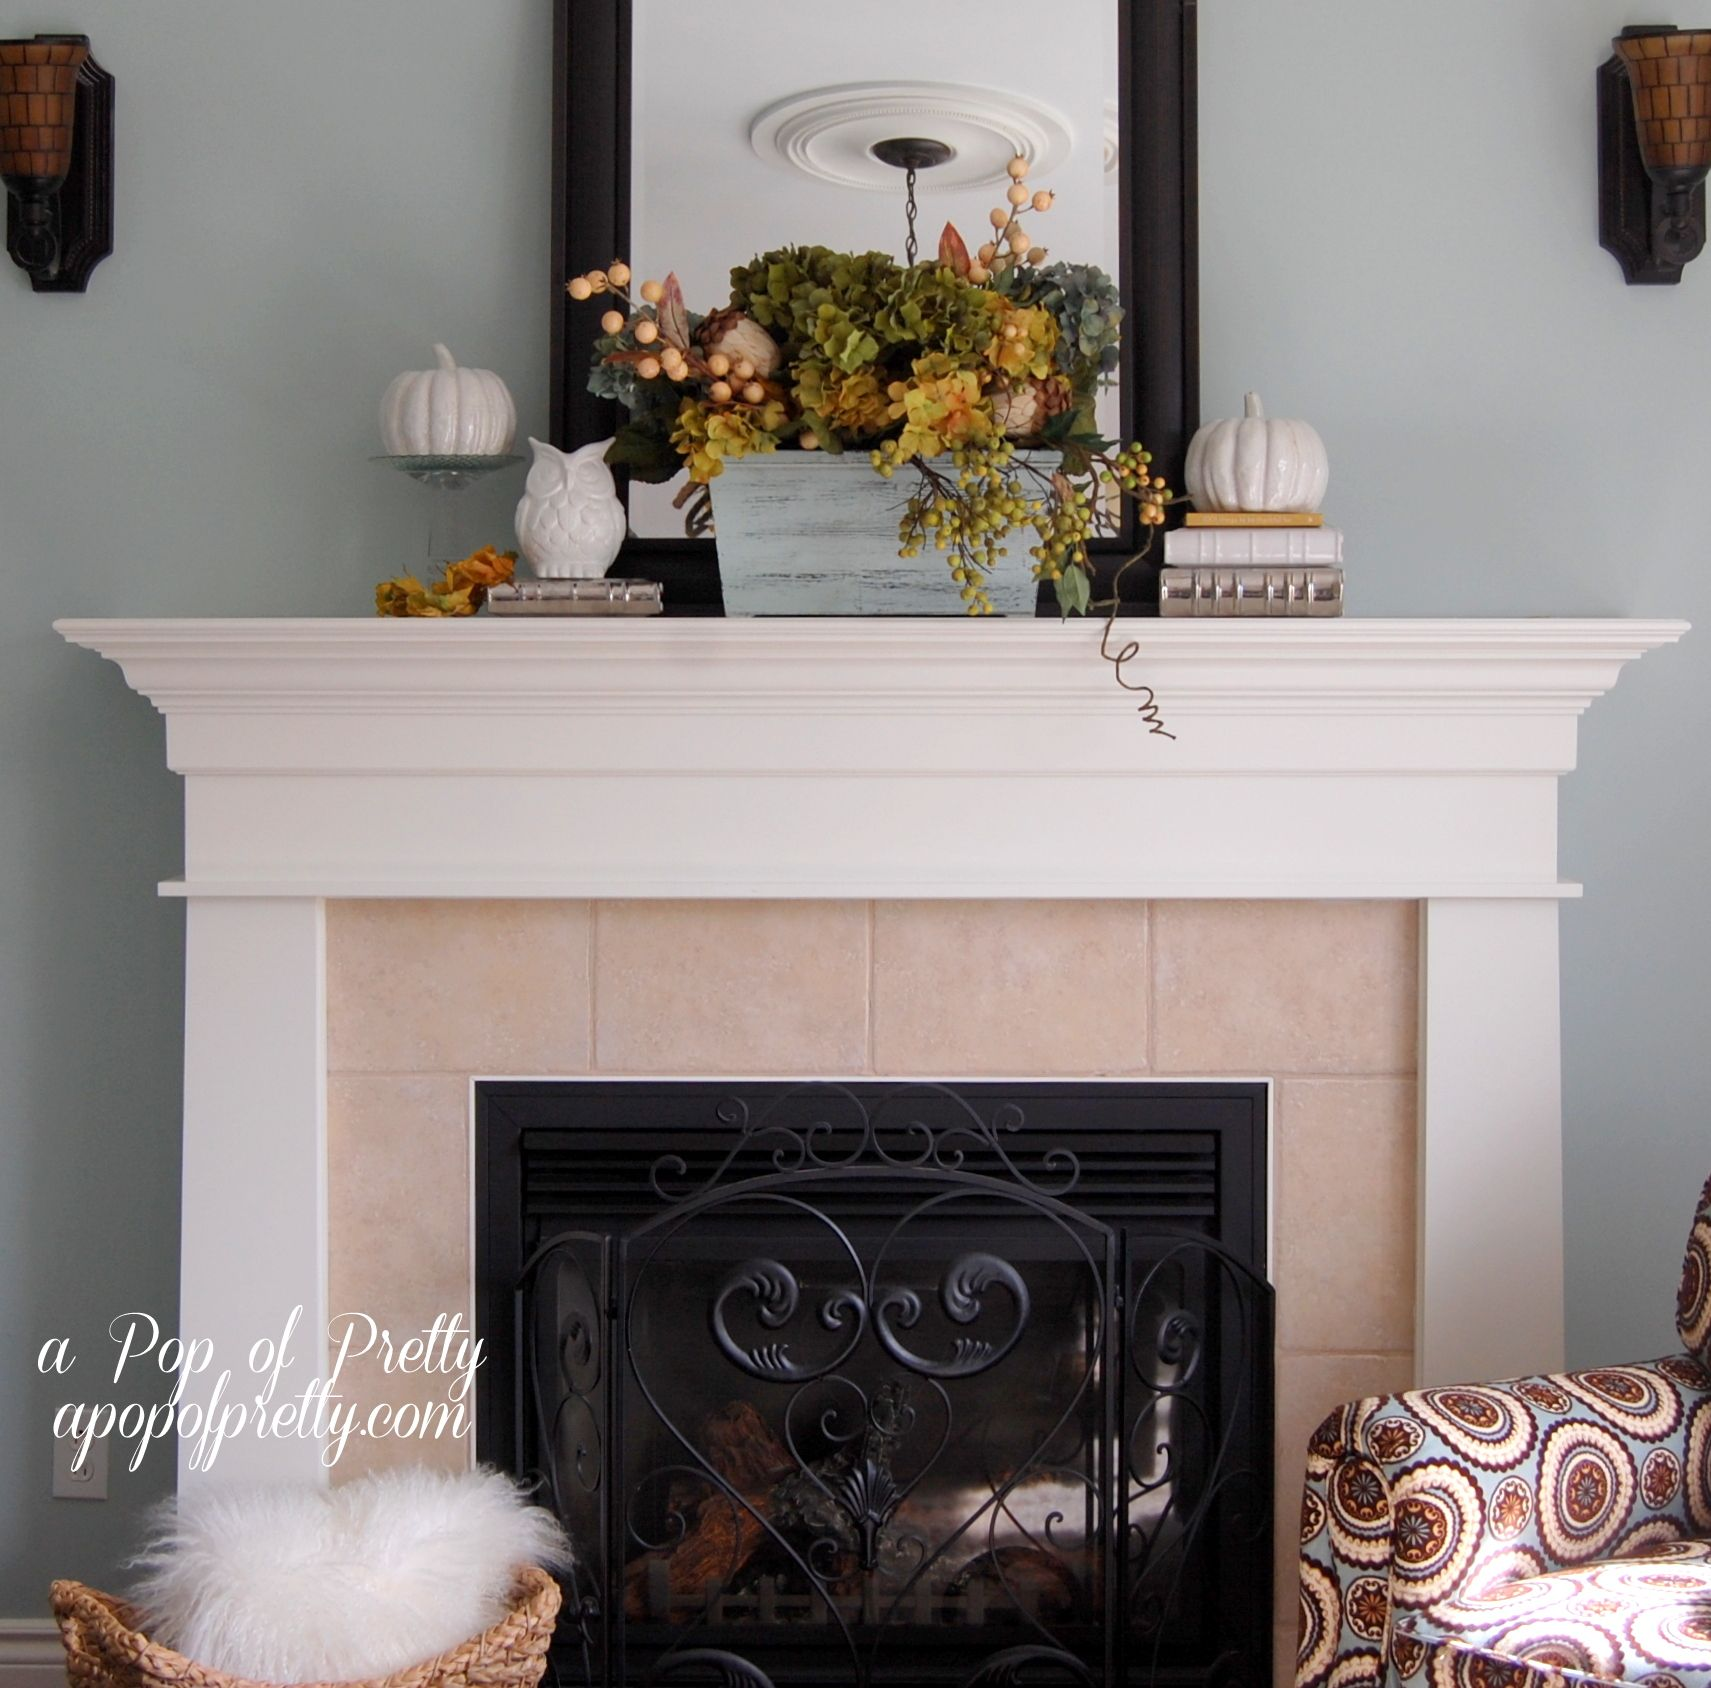 Fall mantel ideas – Ideas for Mantel Decor